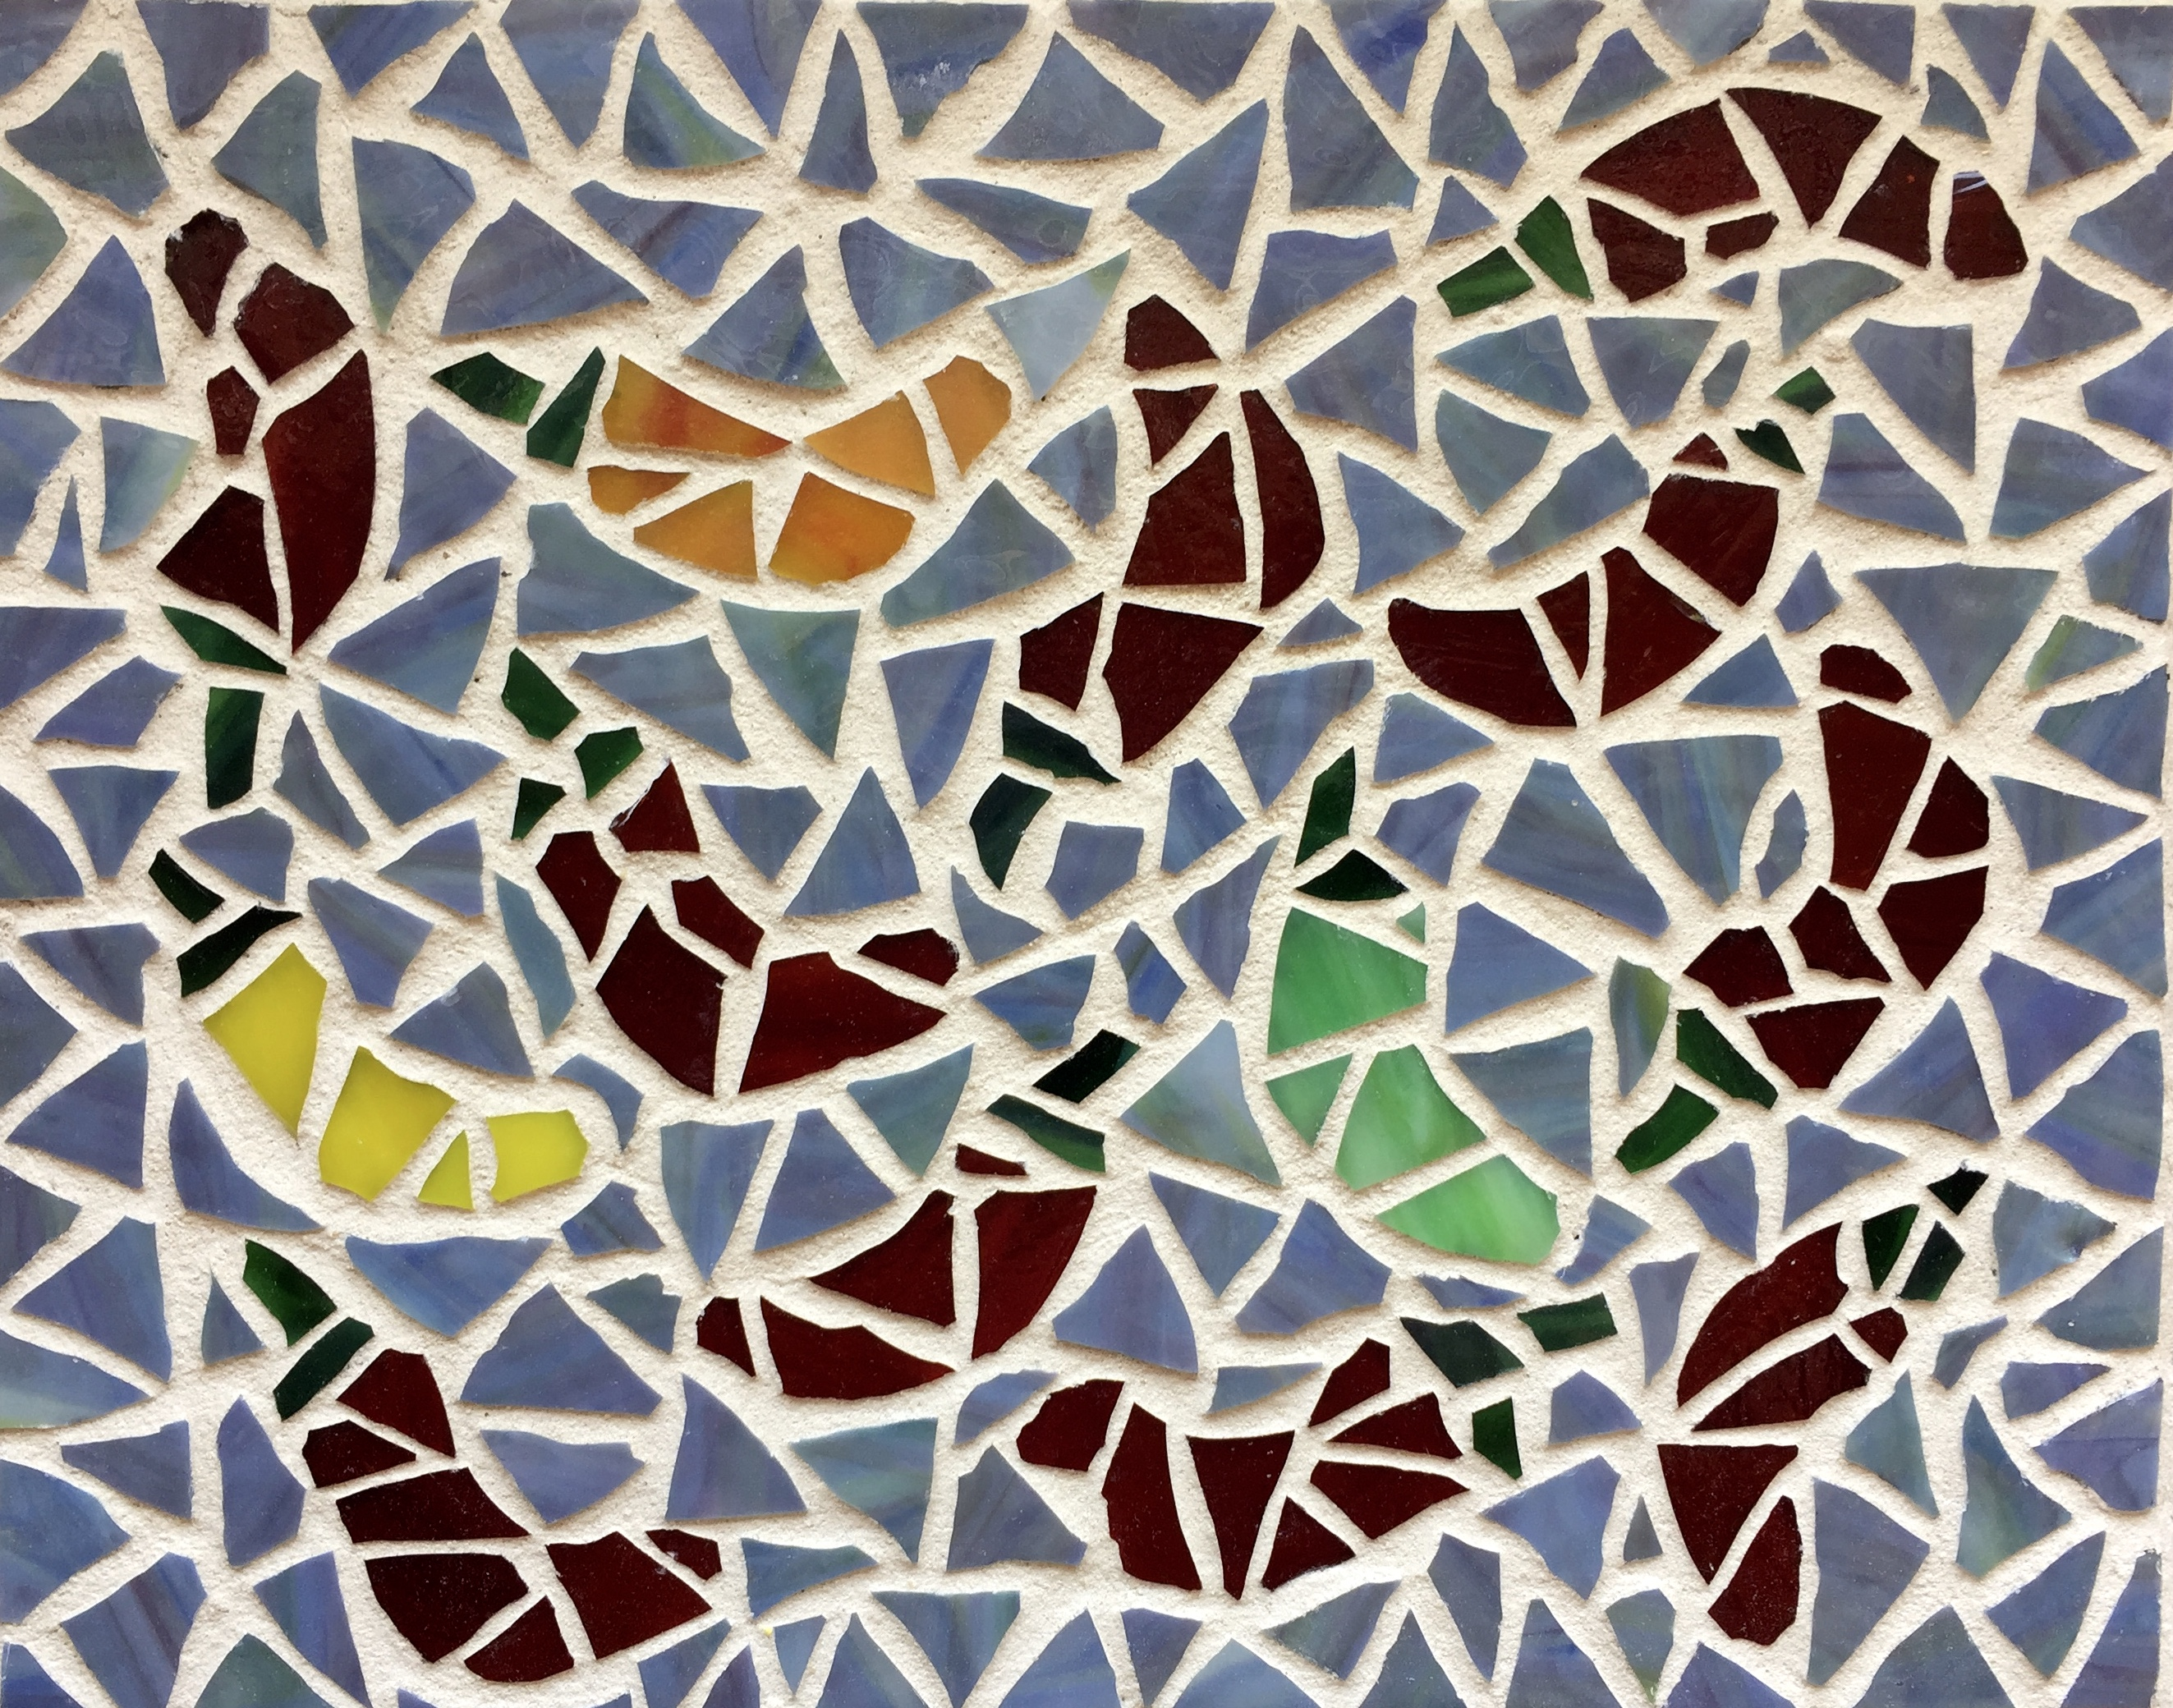 Peppers mosaic